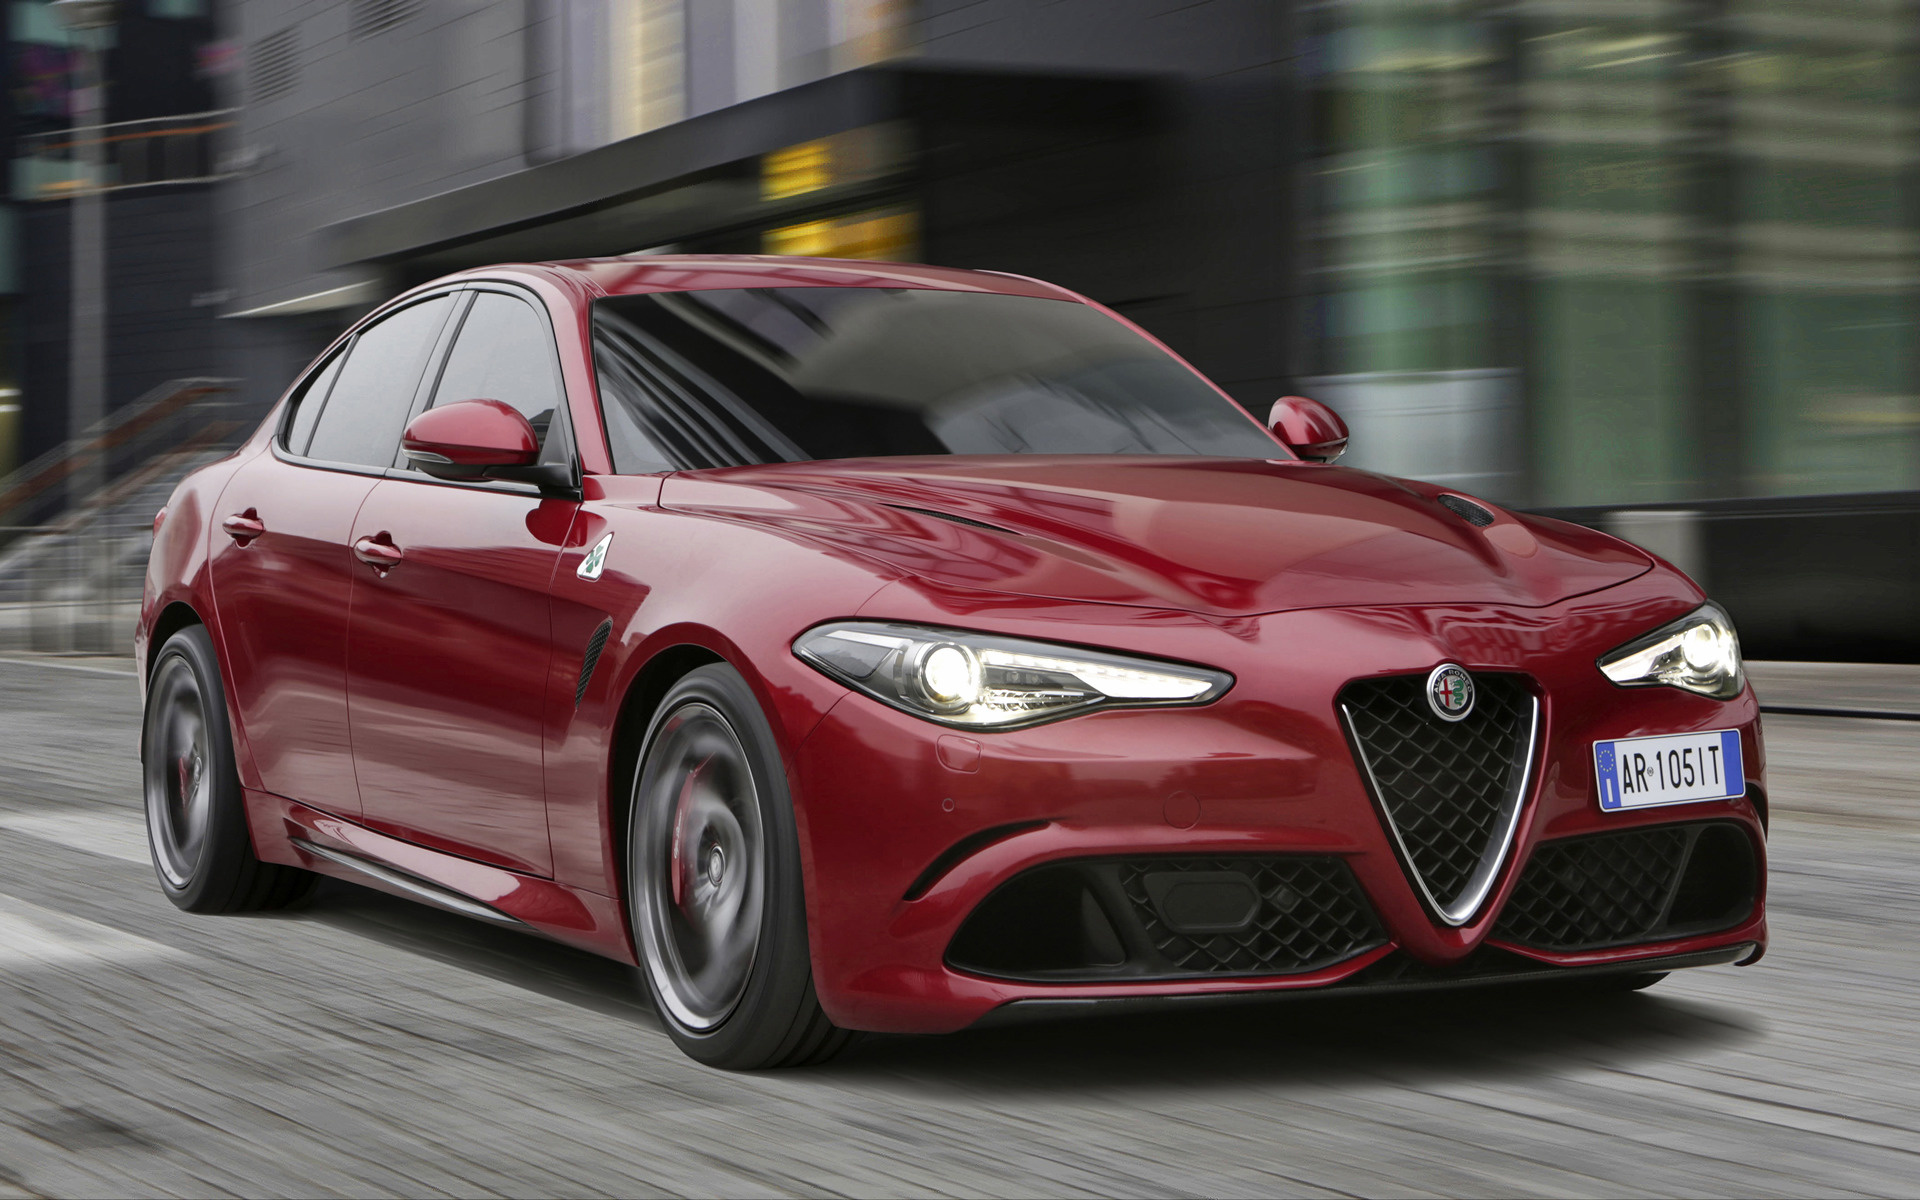 2016 Dodge Ram >> 2016 Alfa Romeo Giulia Quadrifoglio - Wallpapers and HD Images | Car Pixel